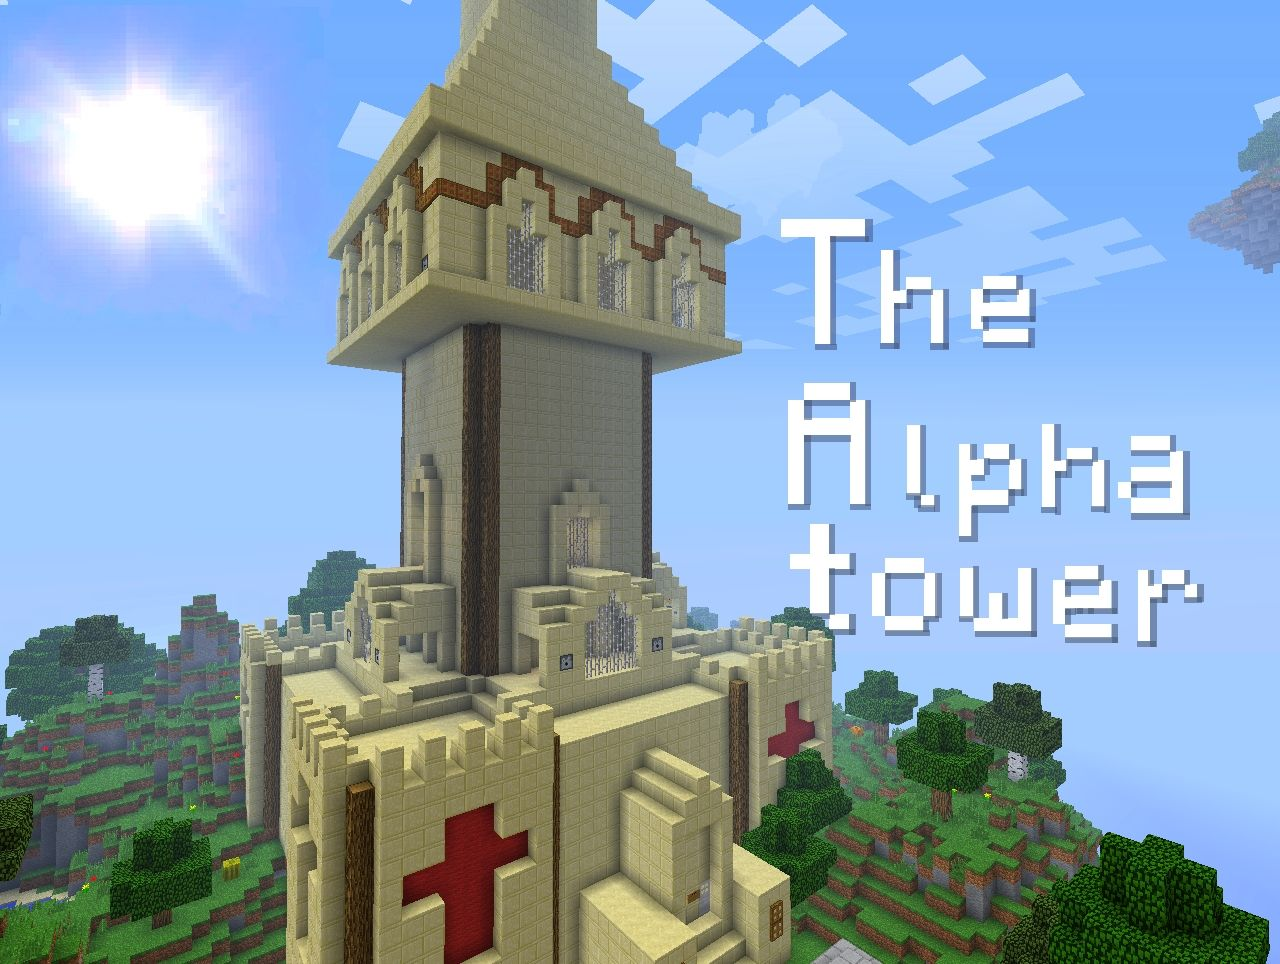 The Alpha Tower Minecraft